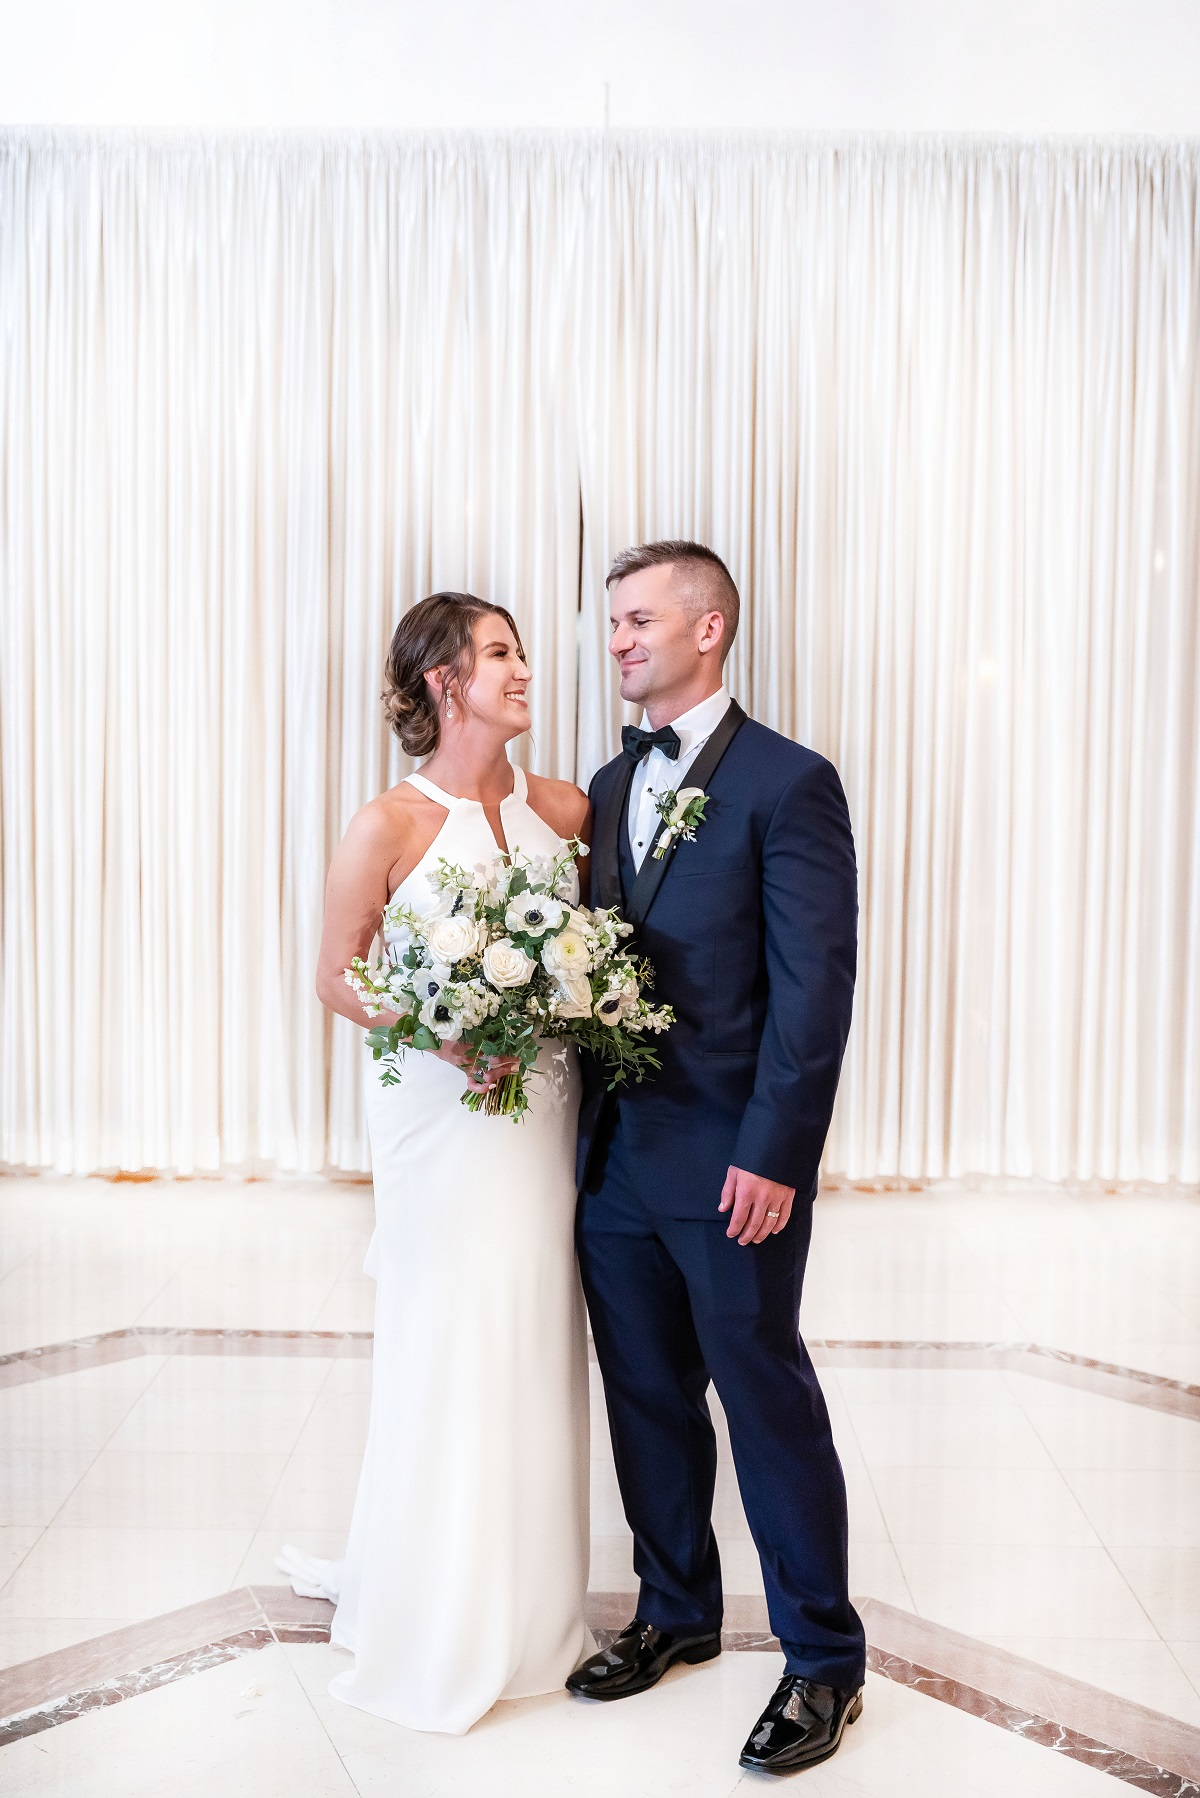 Haley and Jacob from 'Married at First Sight'